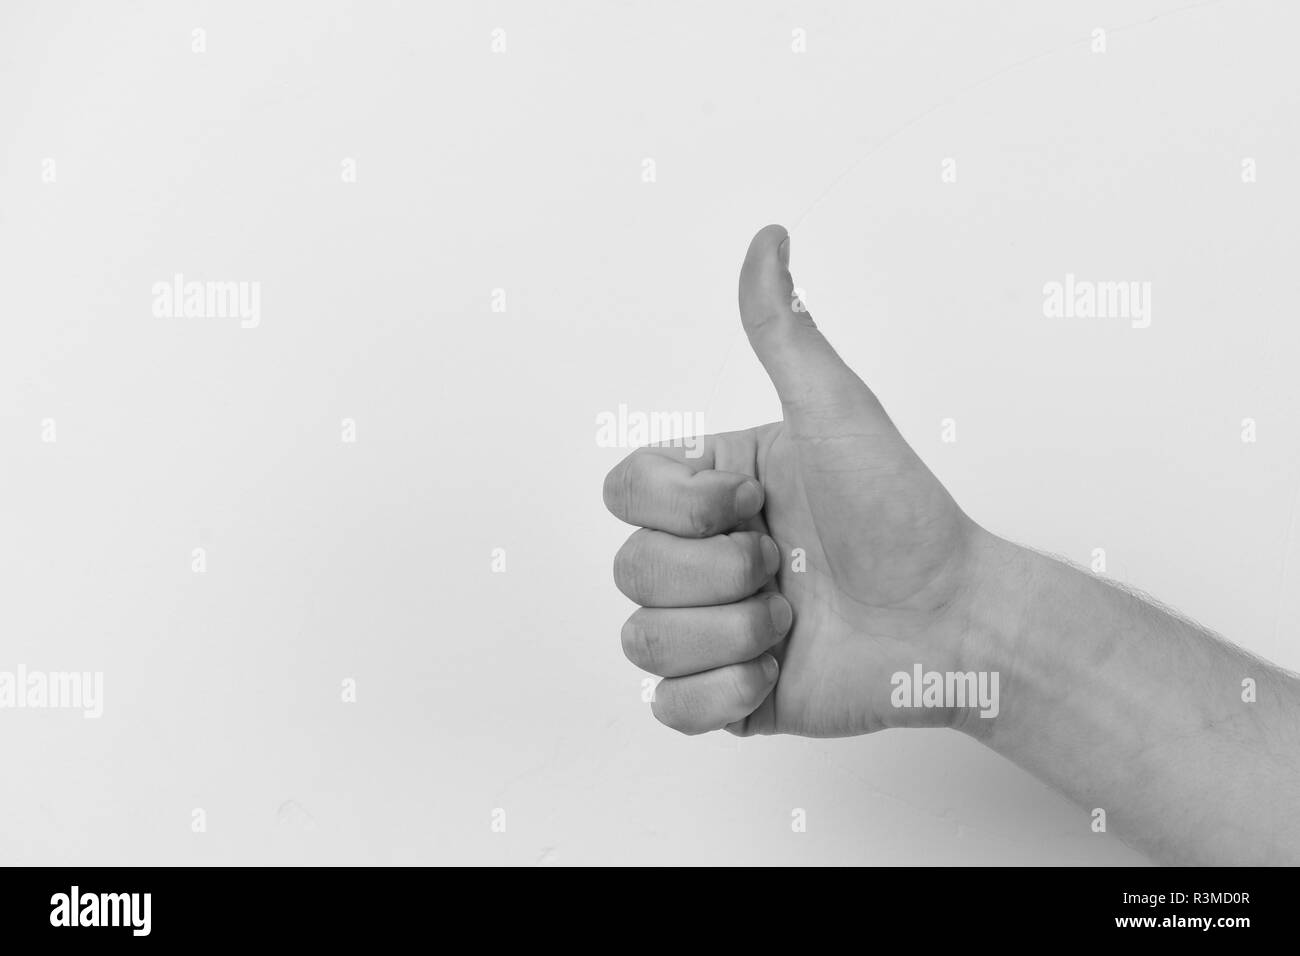 Male hand shows thumbs up sign. Gesture expresses approval. Hand isolated on light grey background. Body language concept. - Stock Image